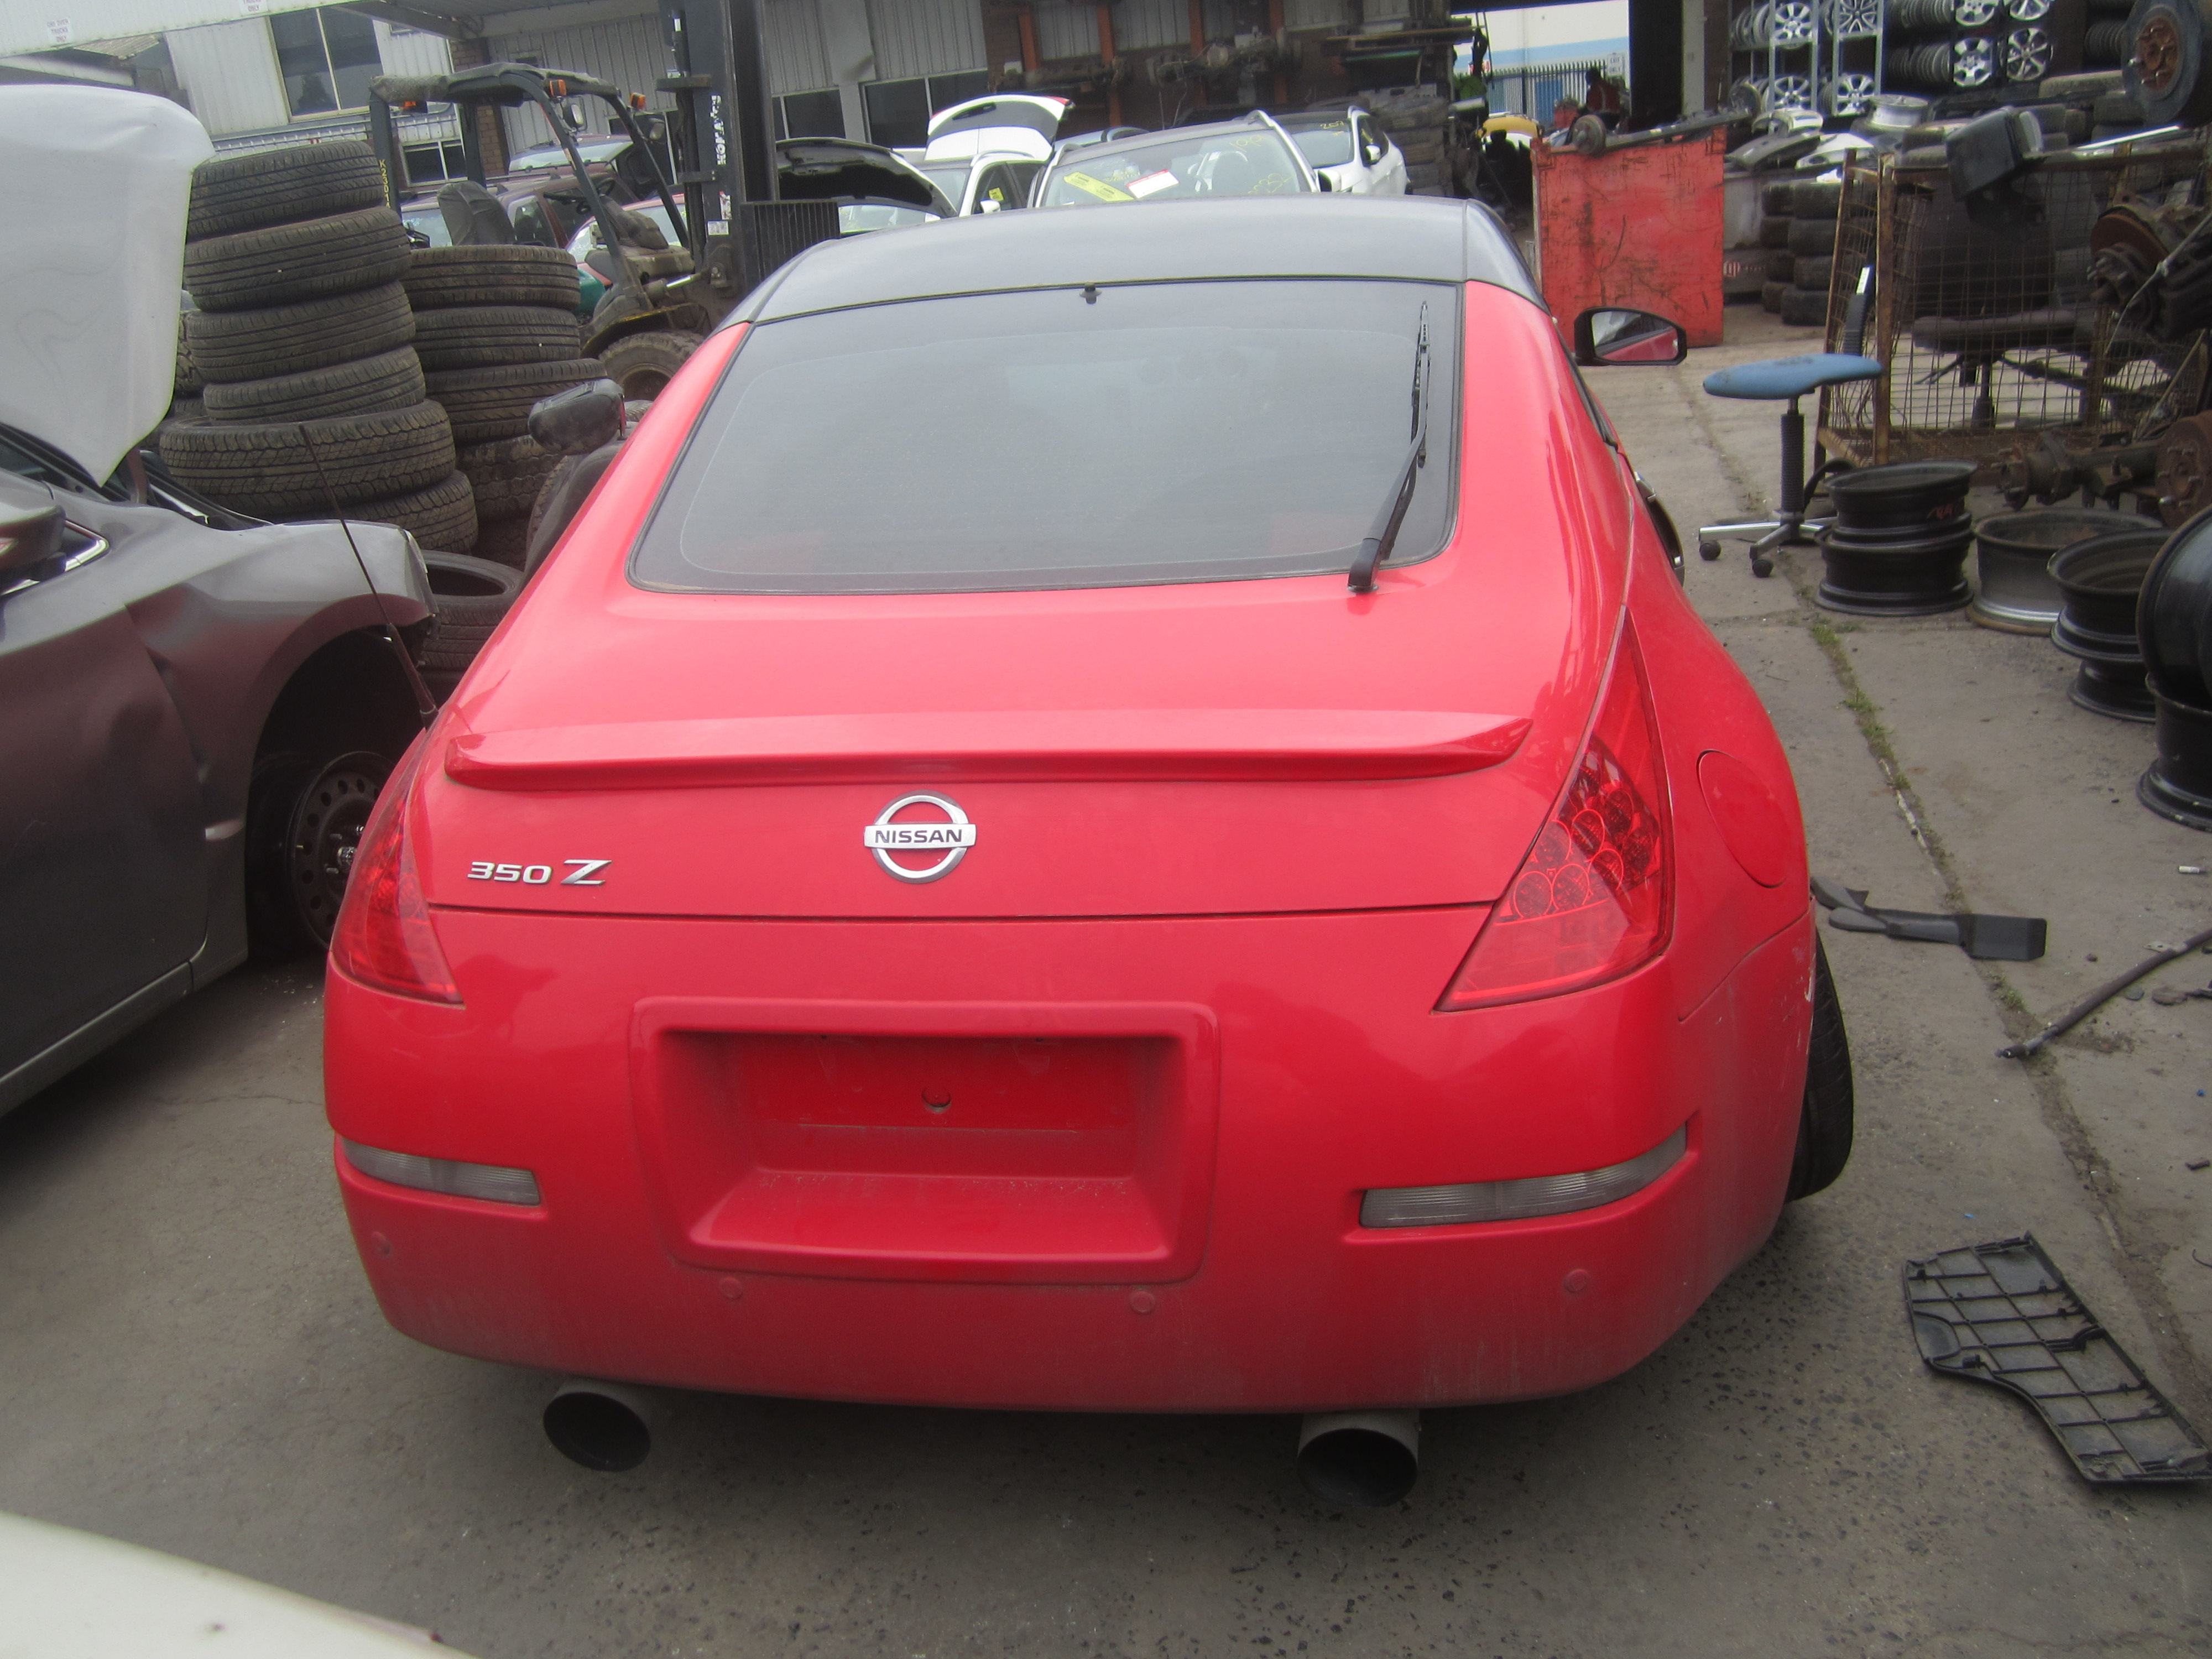 Nissan 350z Parts 305 Wreckers Across Australia 2003 Engine Schematics Z33 Coupe Vq35 V6 Manual Red 2008 Wrecking